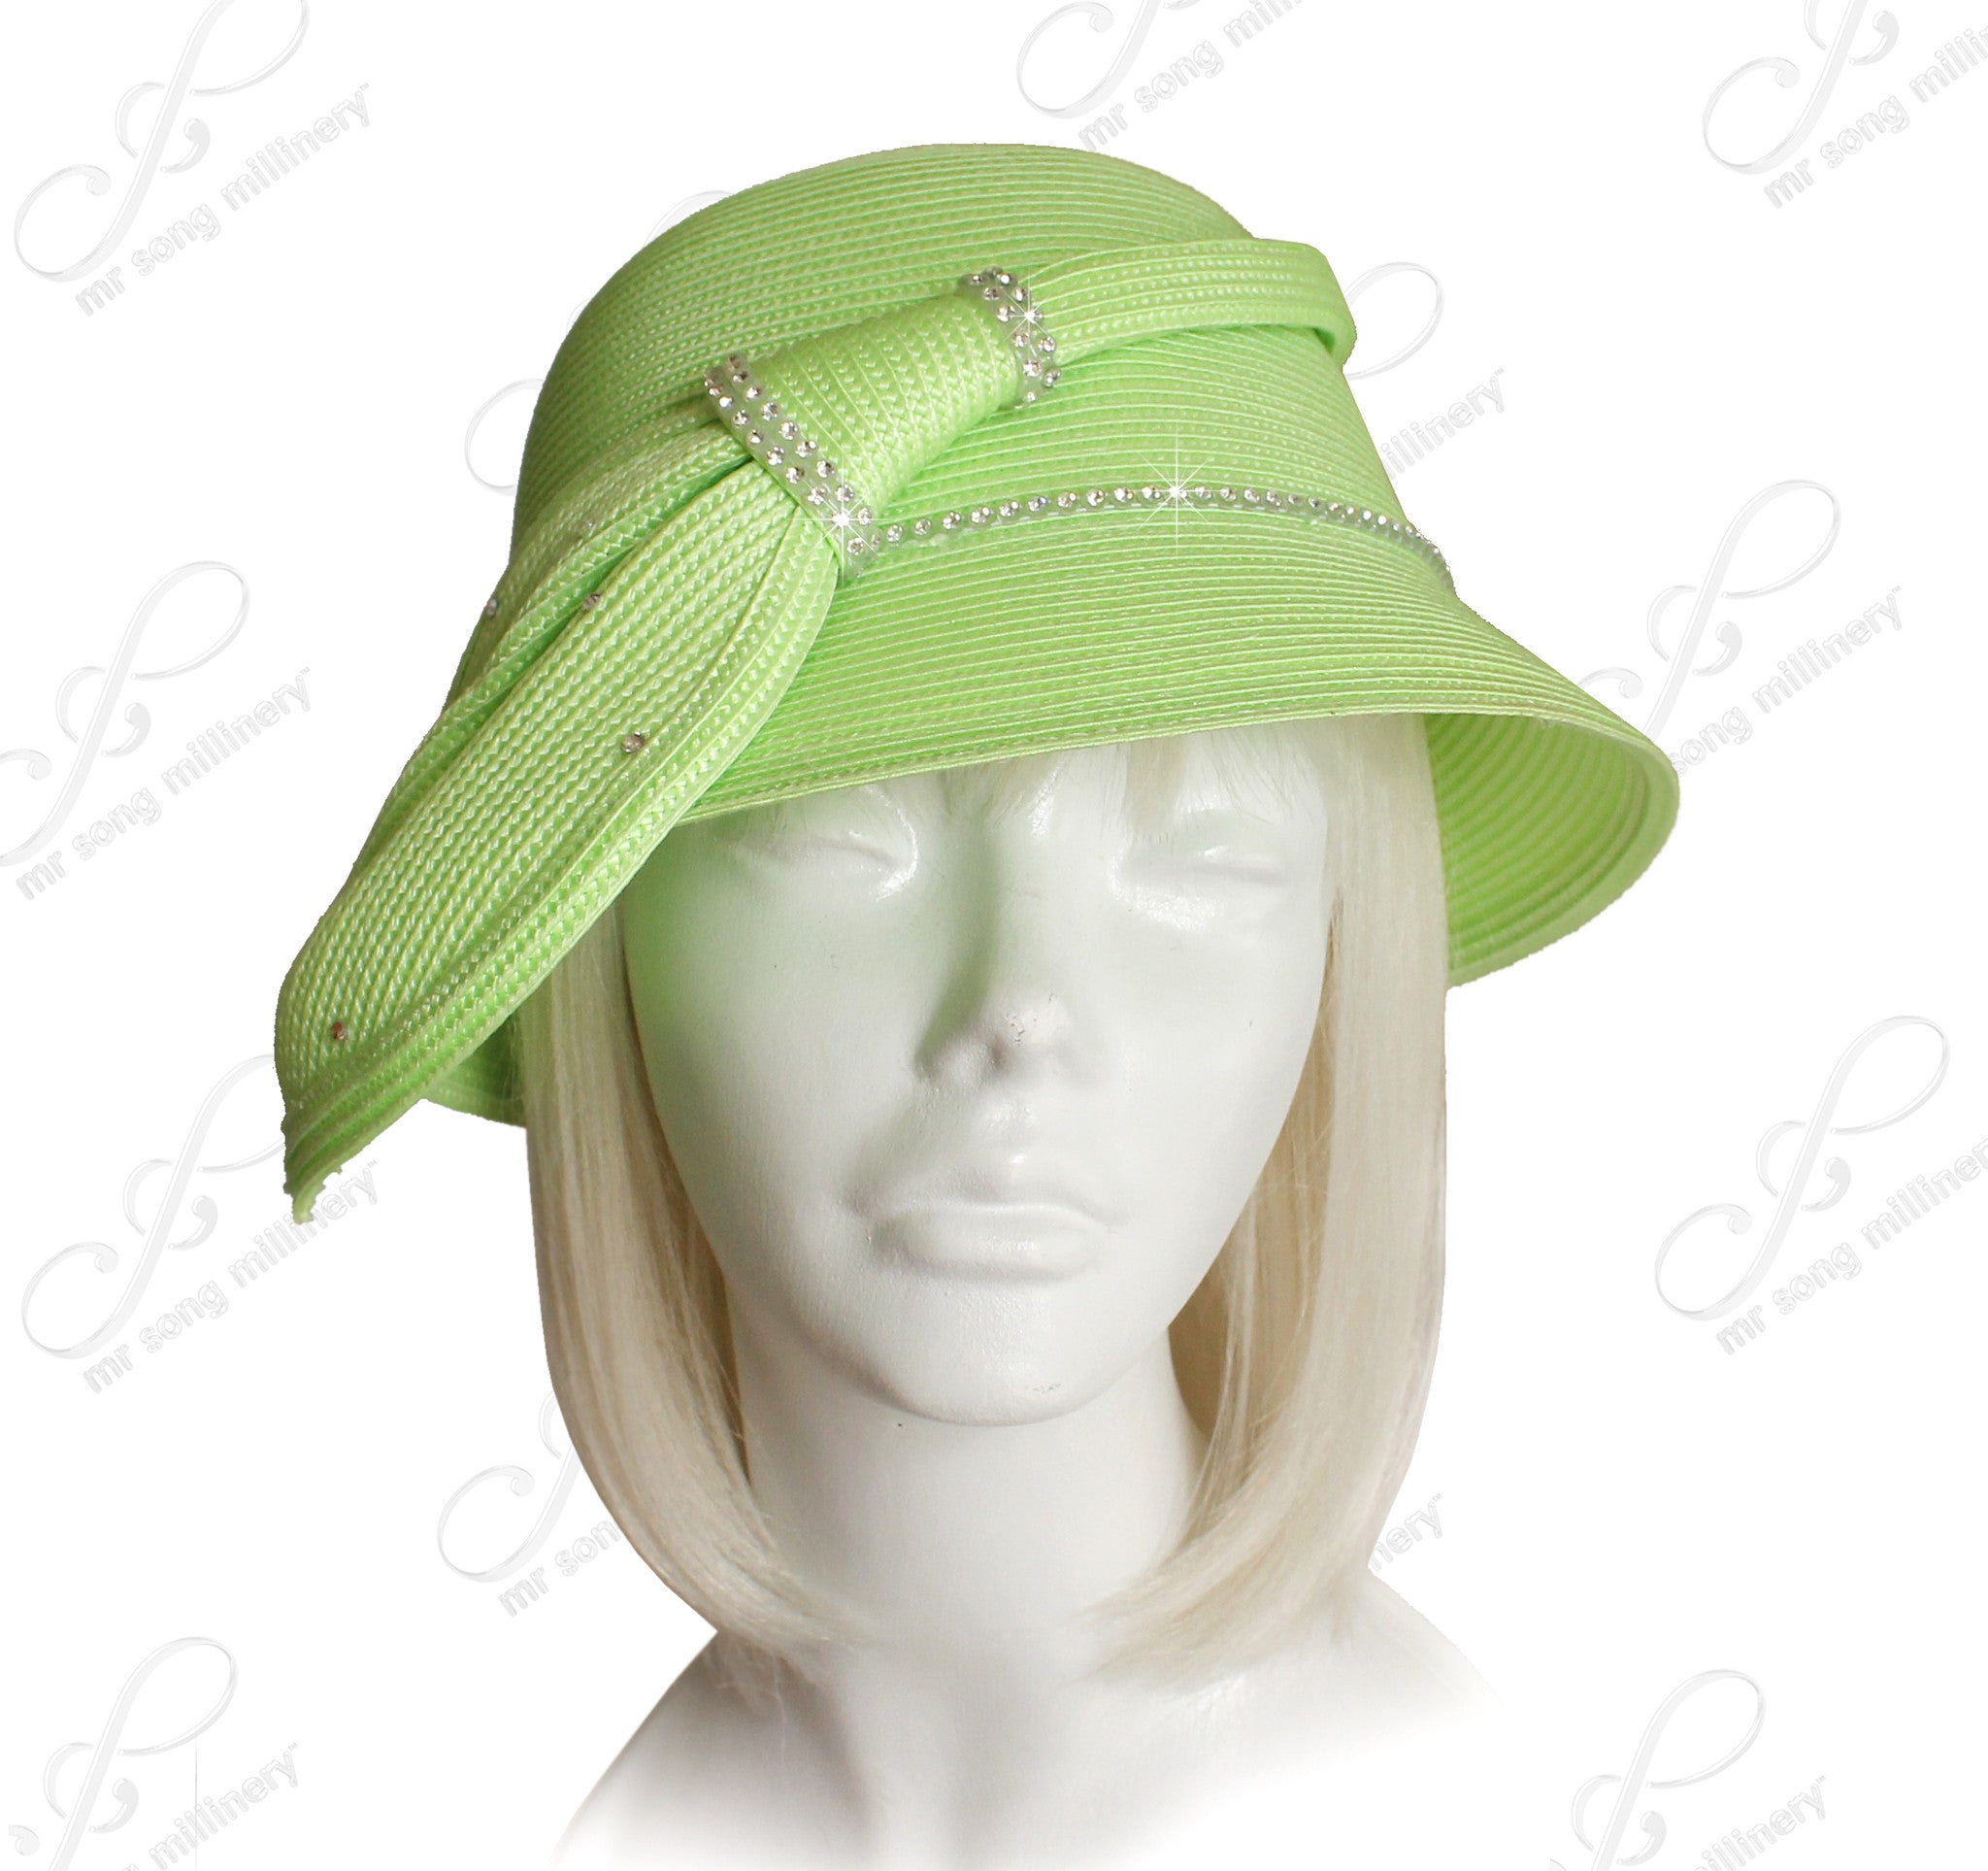 Mr. Song Millinery Bell Cloche Straw-Tagline Bucket Hat - Lime Green